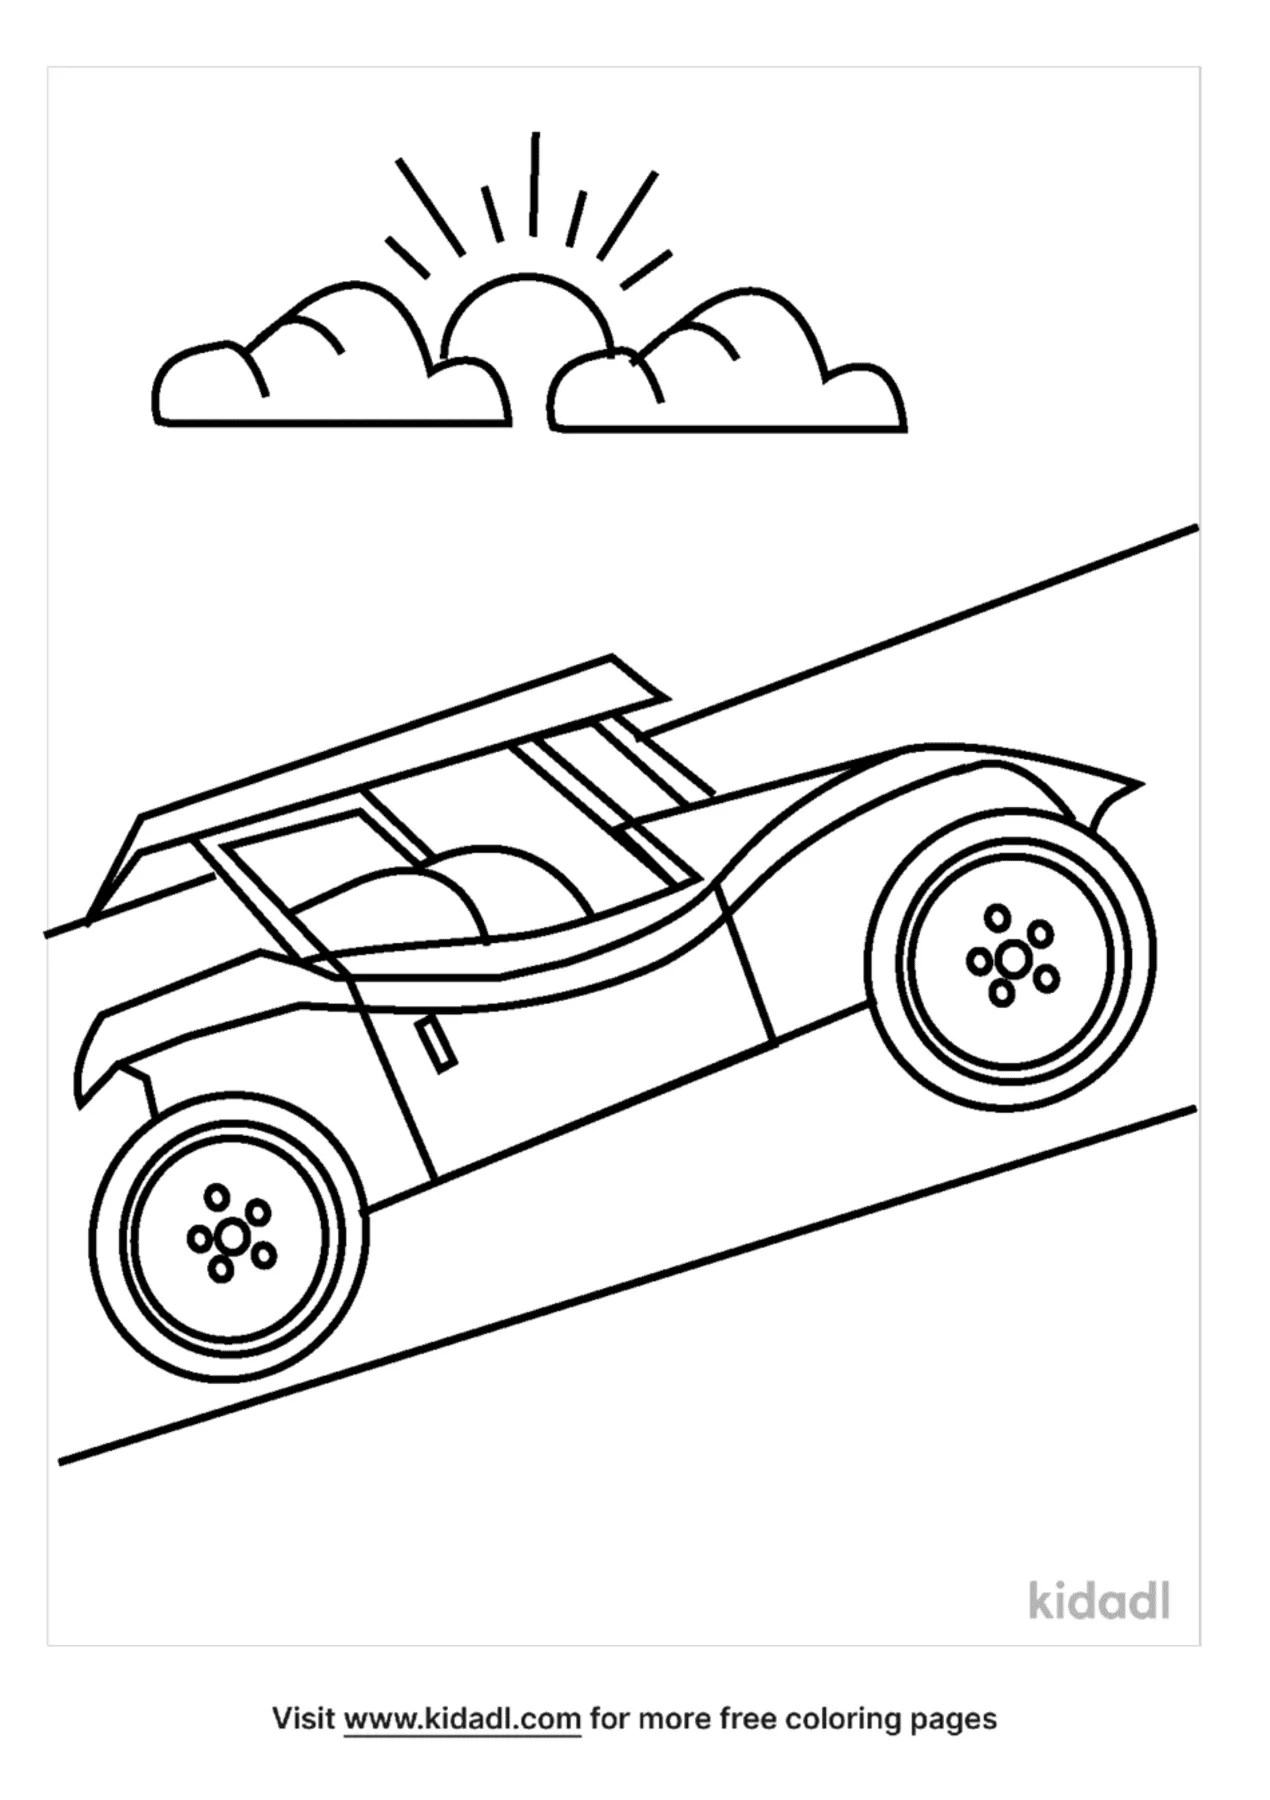 Dune Buggy Coloring Page : buggy, coloring, Buggy, Coloring, Pages, Vehicles, Kidadl